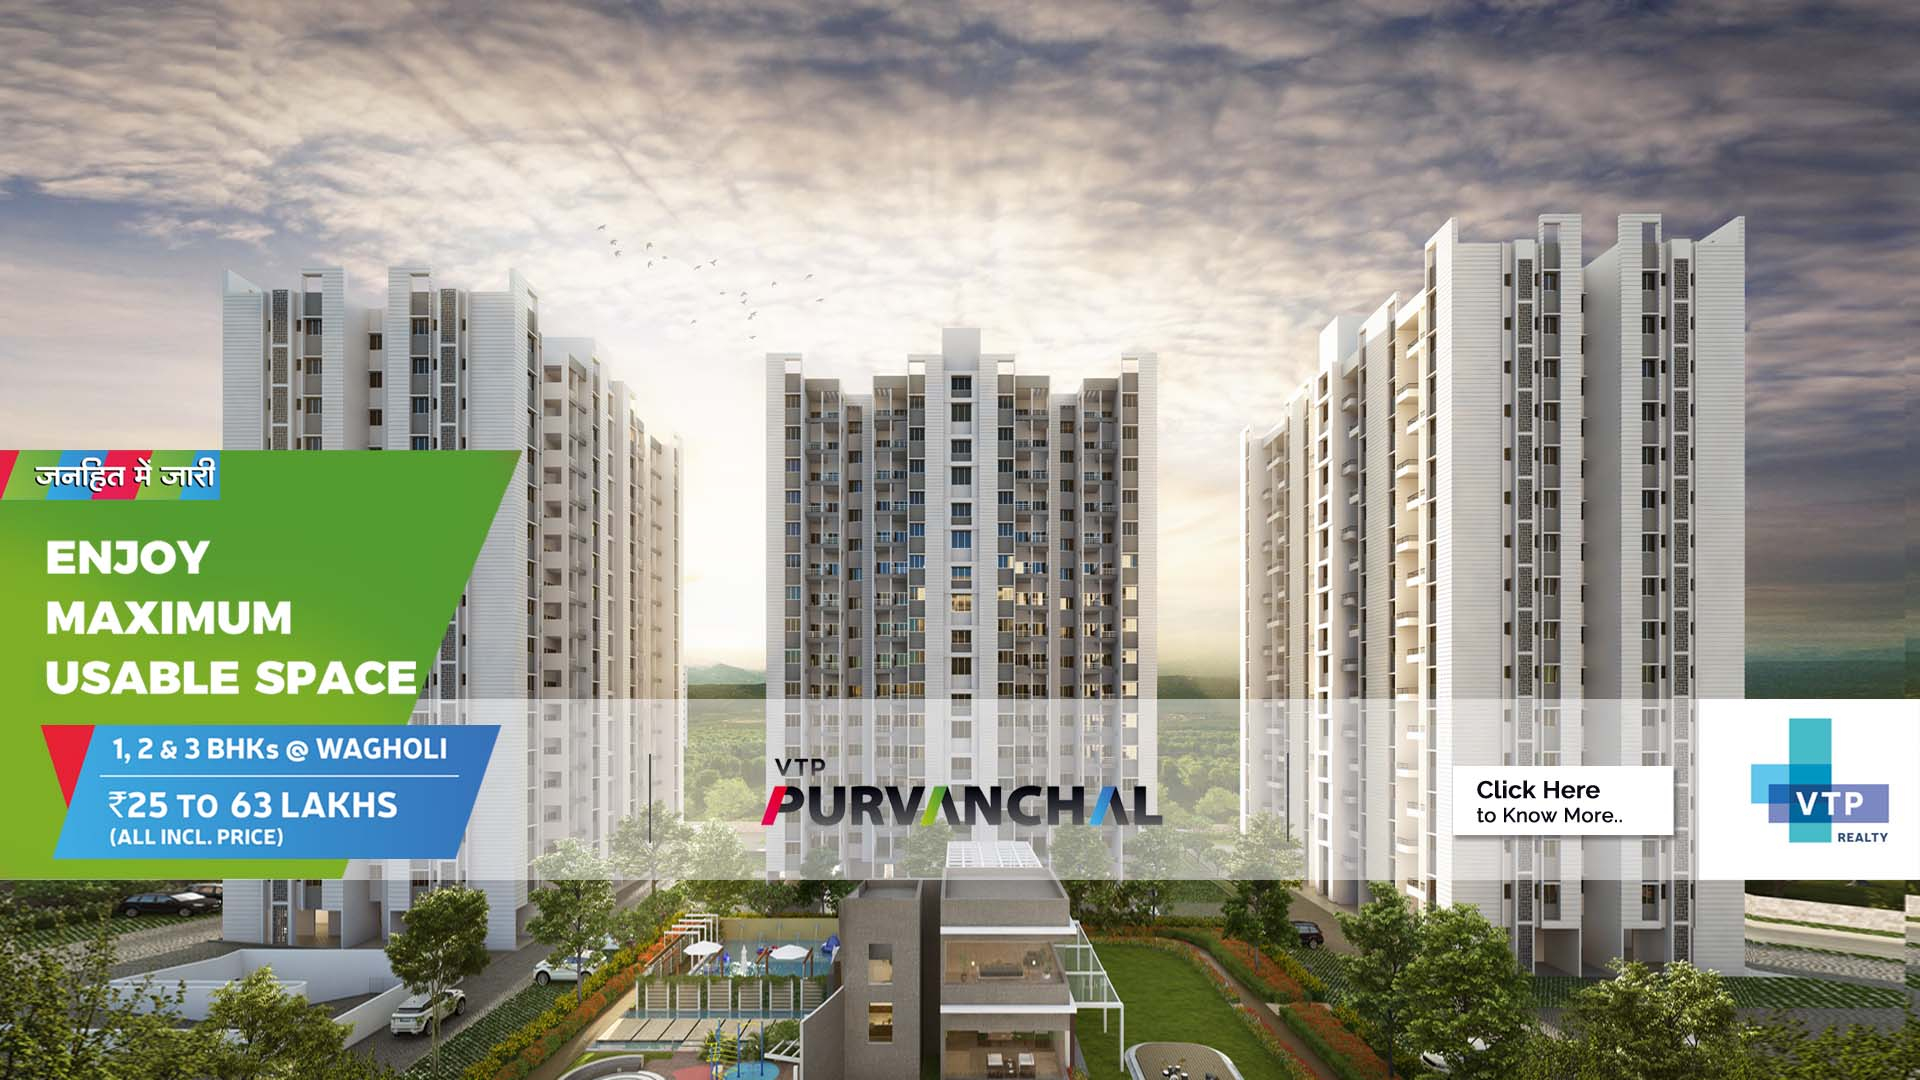 credai property for sale in pune for sale 1 BHK 2 BHK 3 BHK and flats